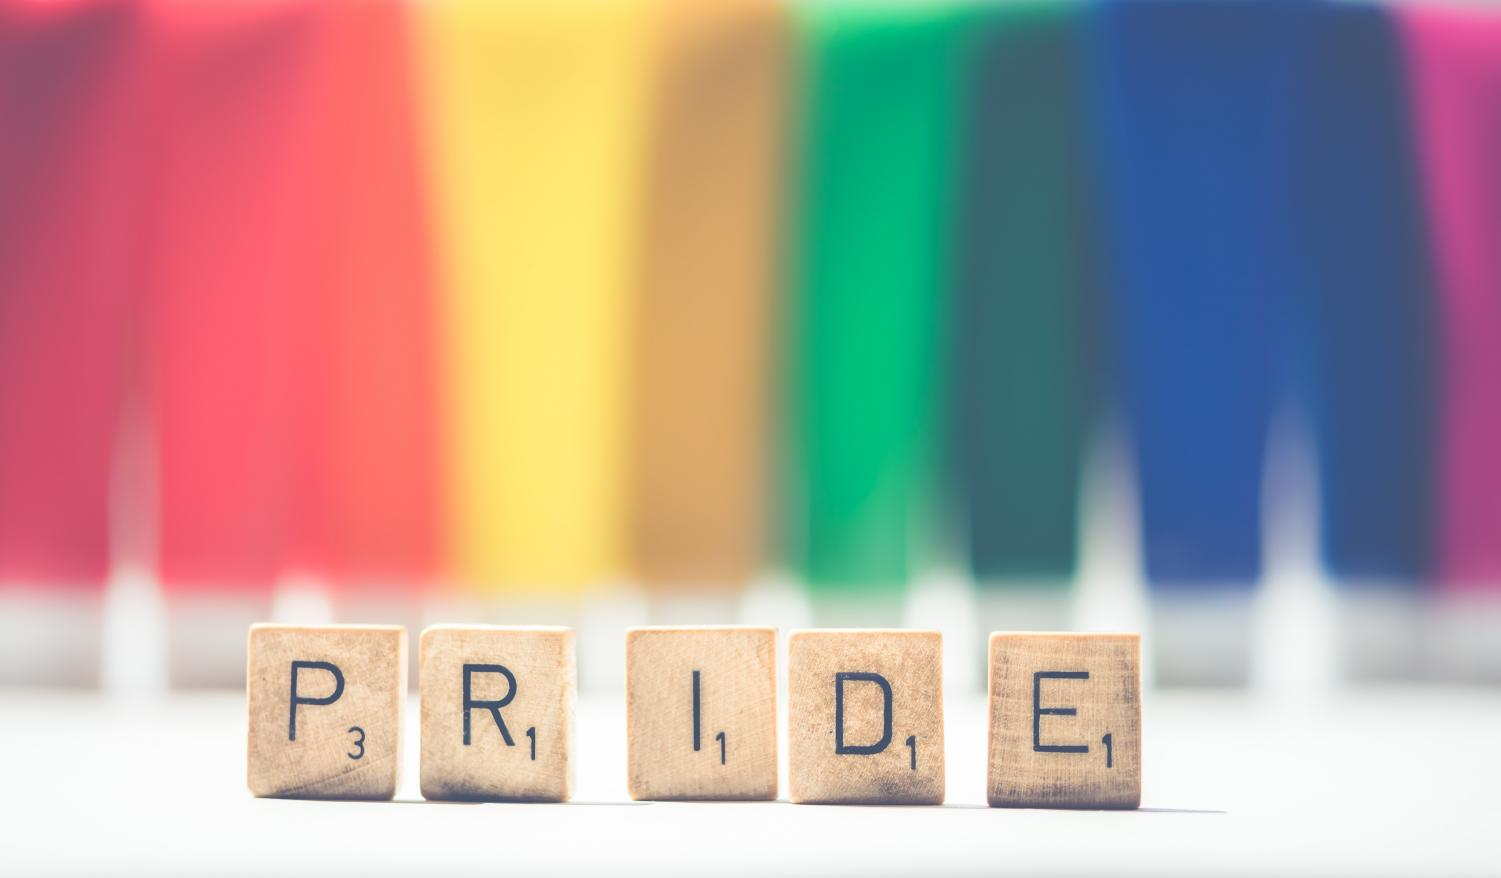 Coming Out day serves as a reminder to the LGBT community to embrace and celebrate your true identity.